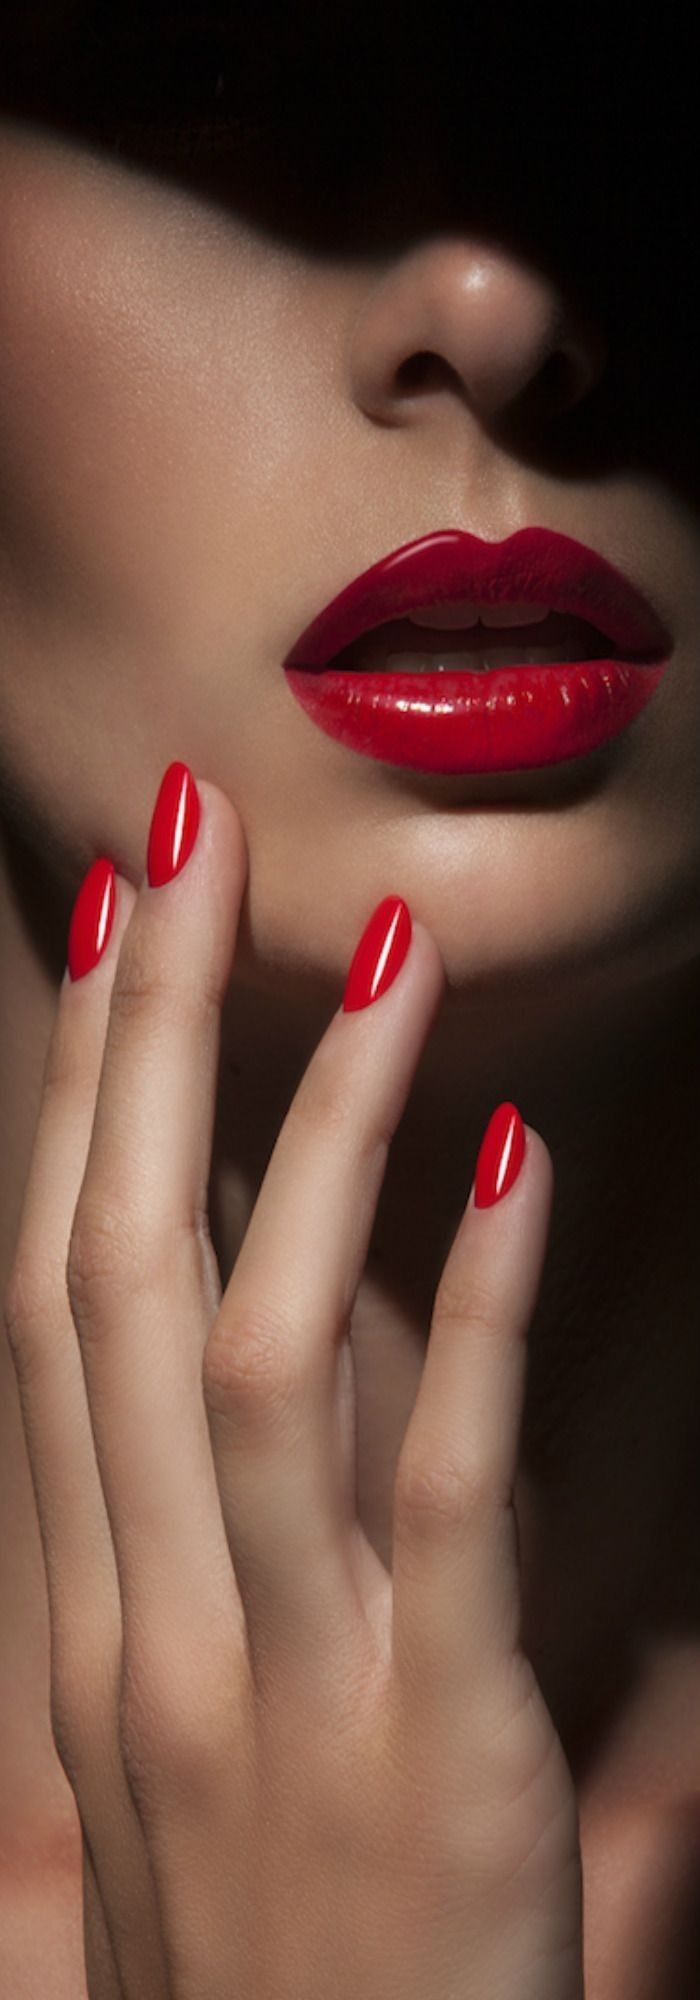 nails and lipstick tumblr - 564×1611